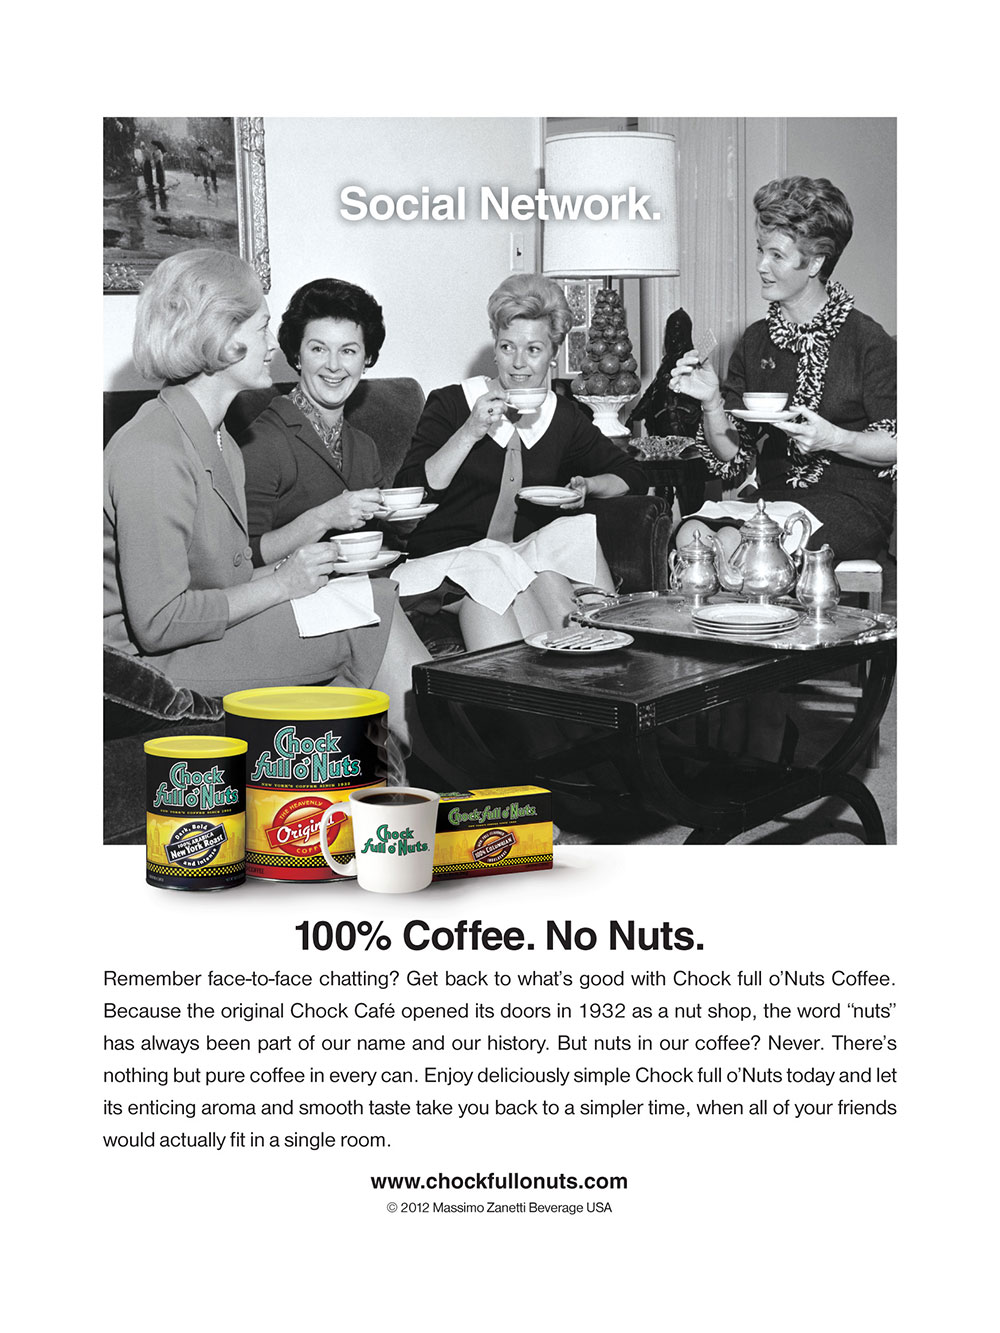 Chock Social Network ad